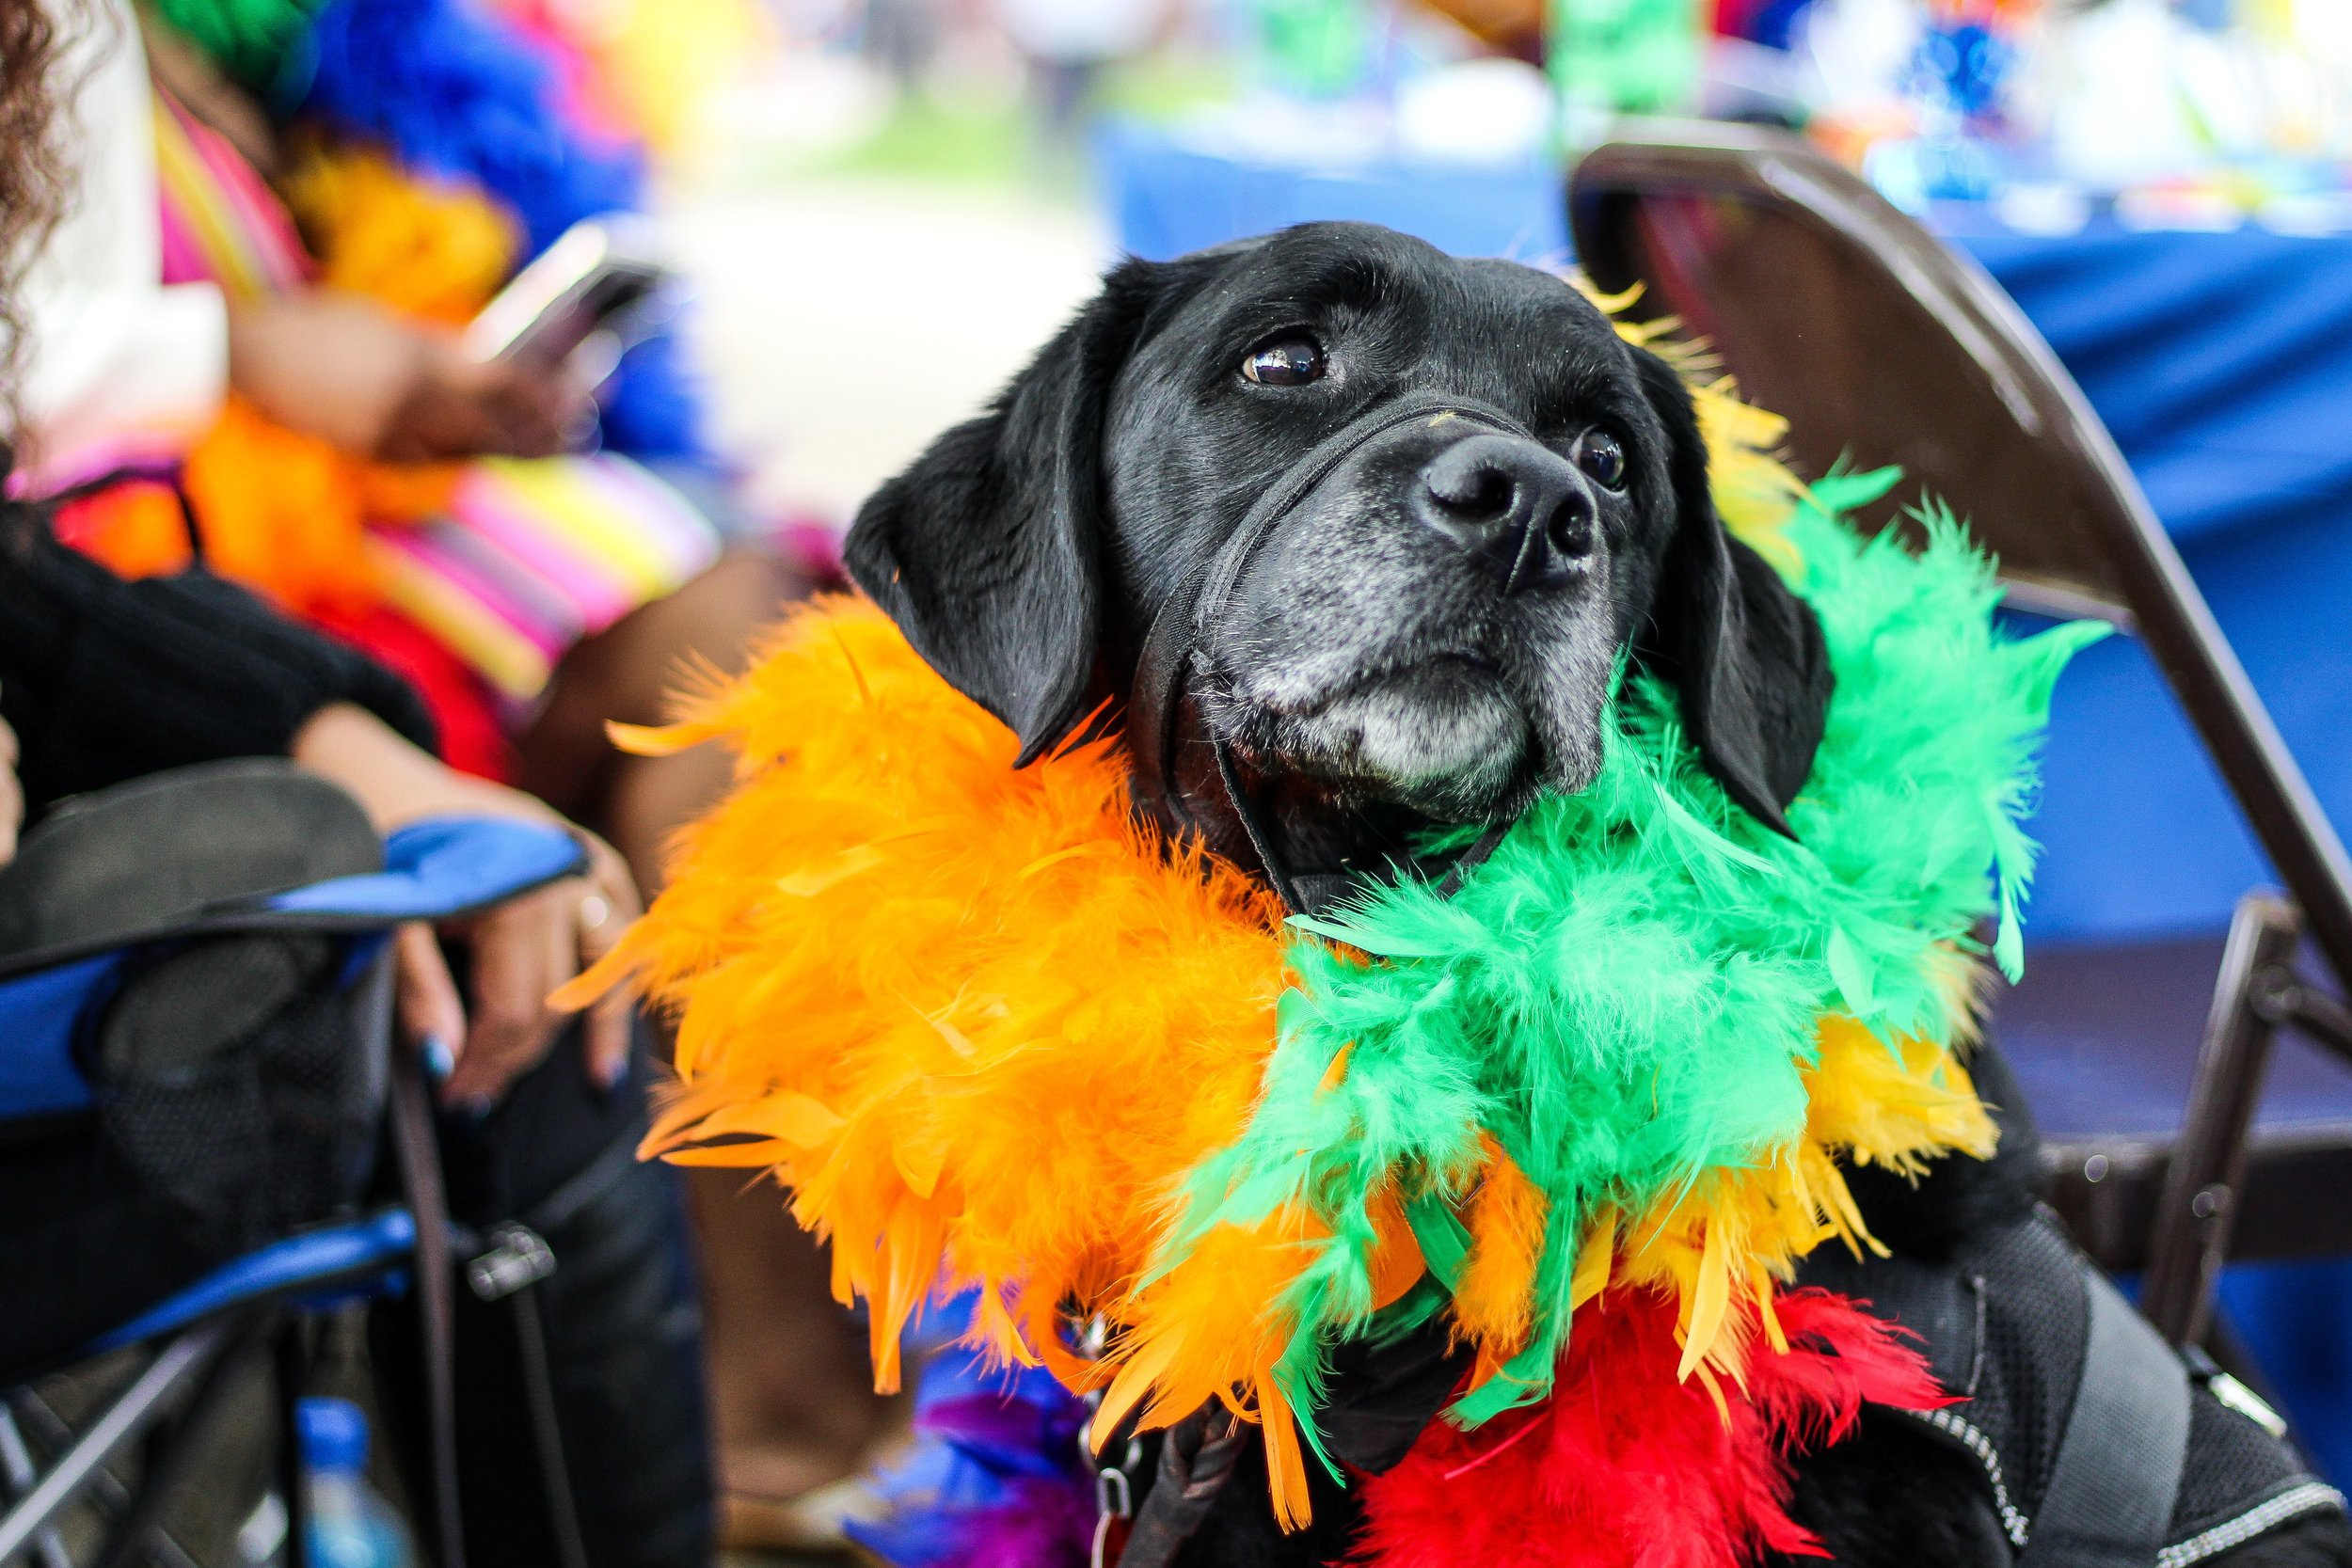 The Pride parade in Vancouver takes place on the Sunday of the August long weekend in Vancouver. It will be crowded and loud so you might want to leave your furry friends at home.